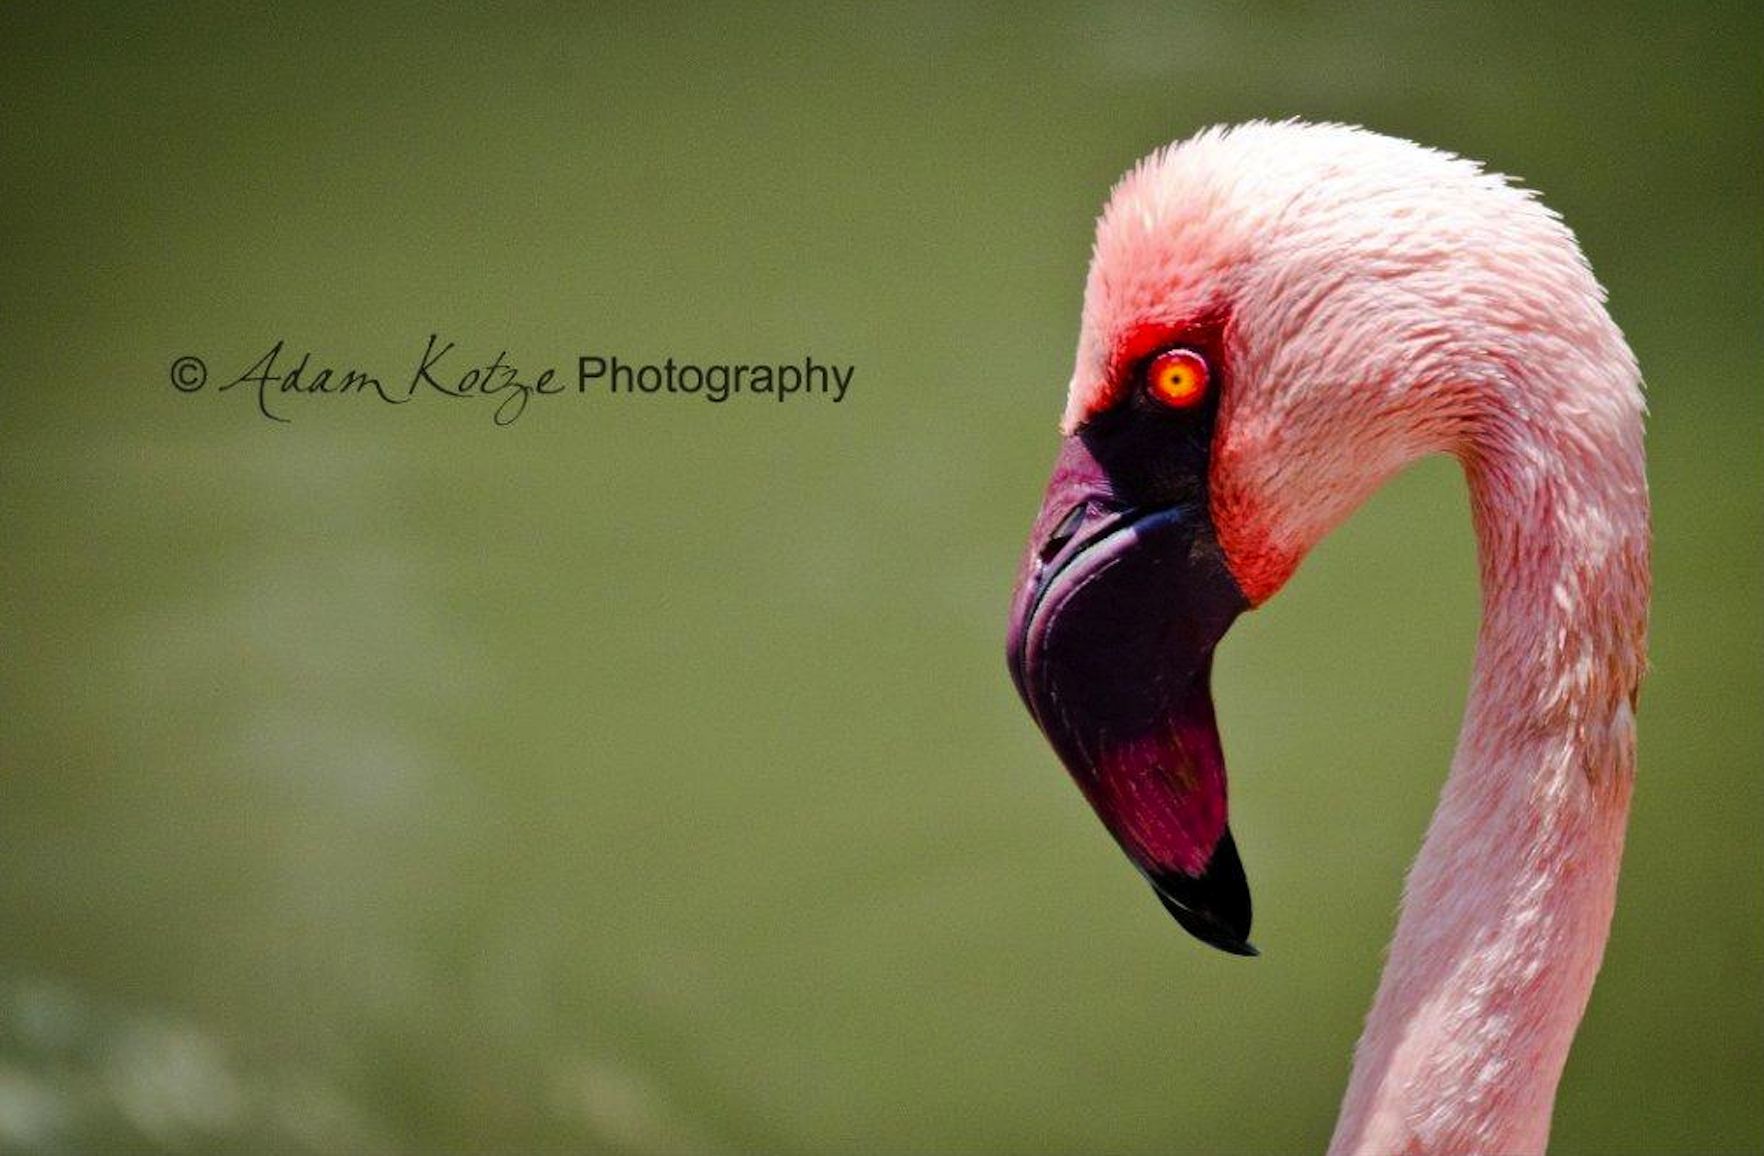 The lesser flamingo lives in Africa and are principally found in the